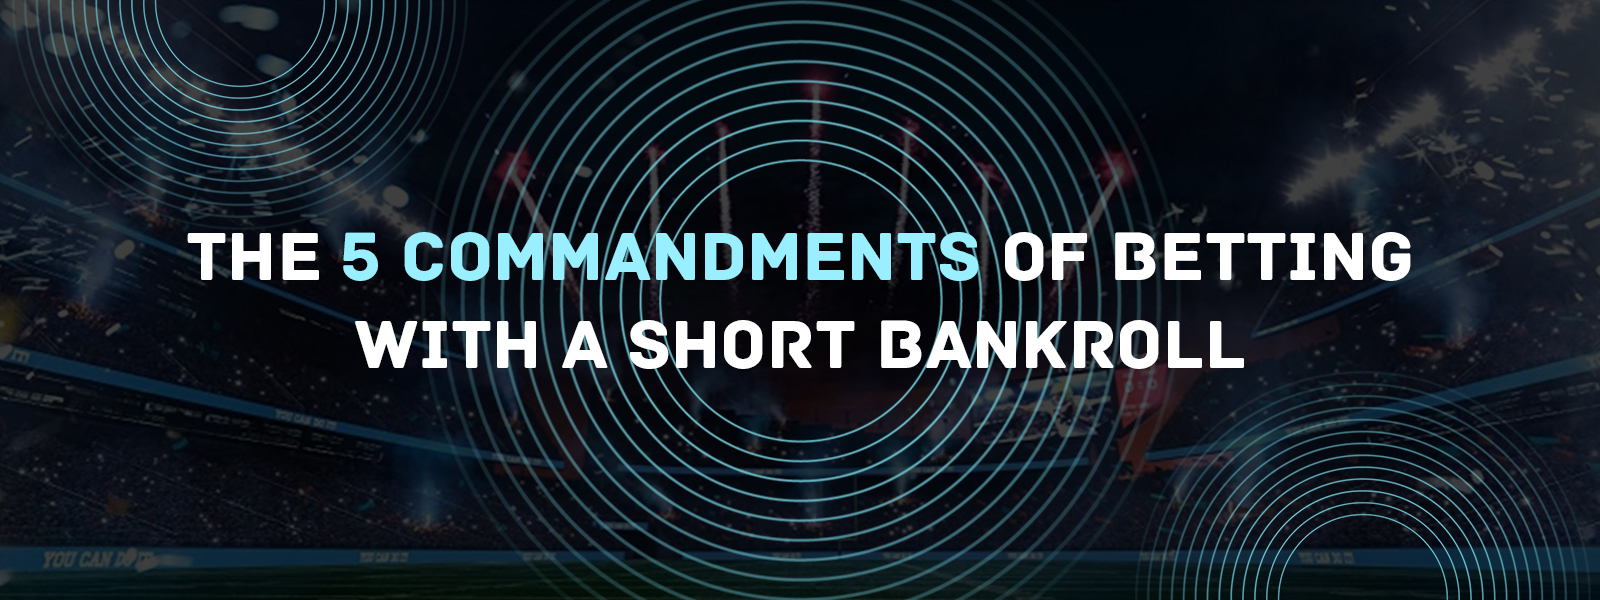 The 5 Commandments Of Betting With a Short Betting Bankroll